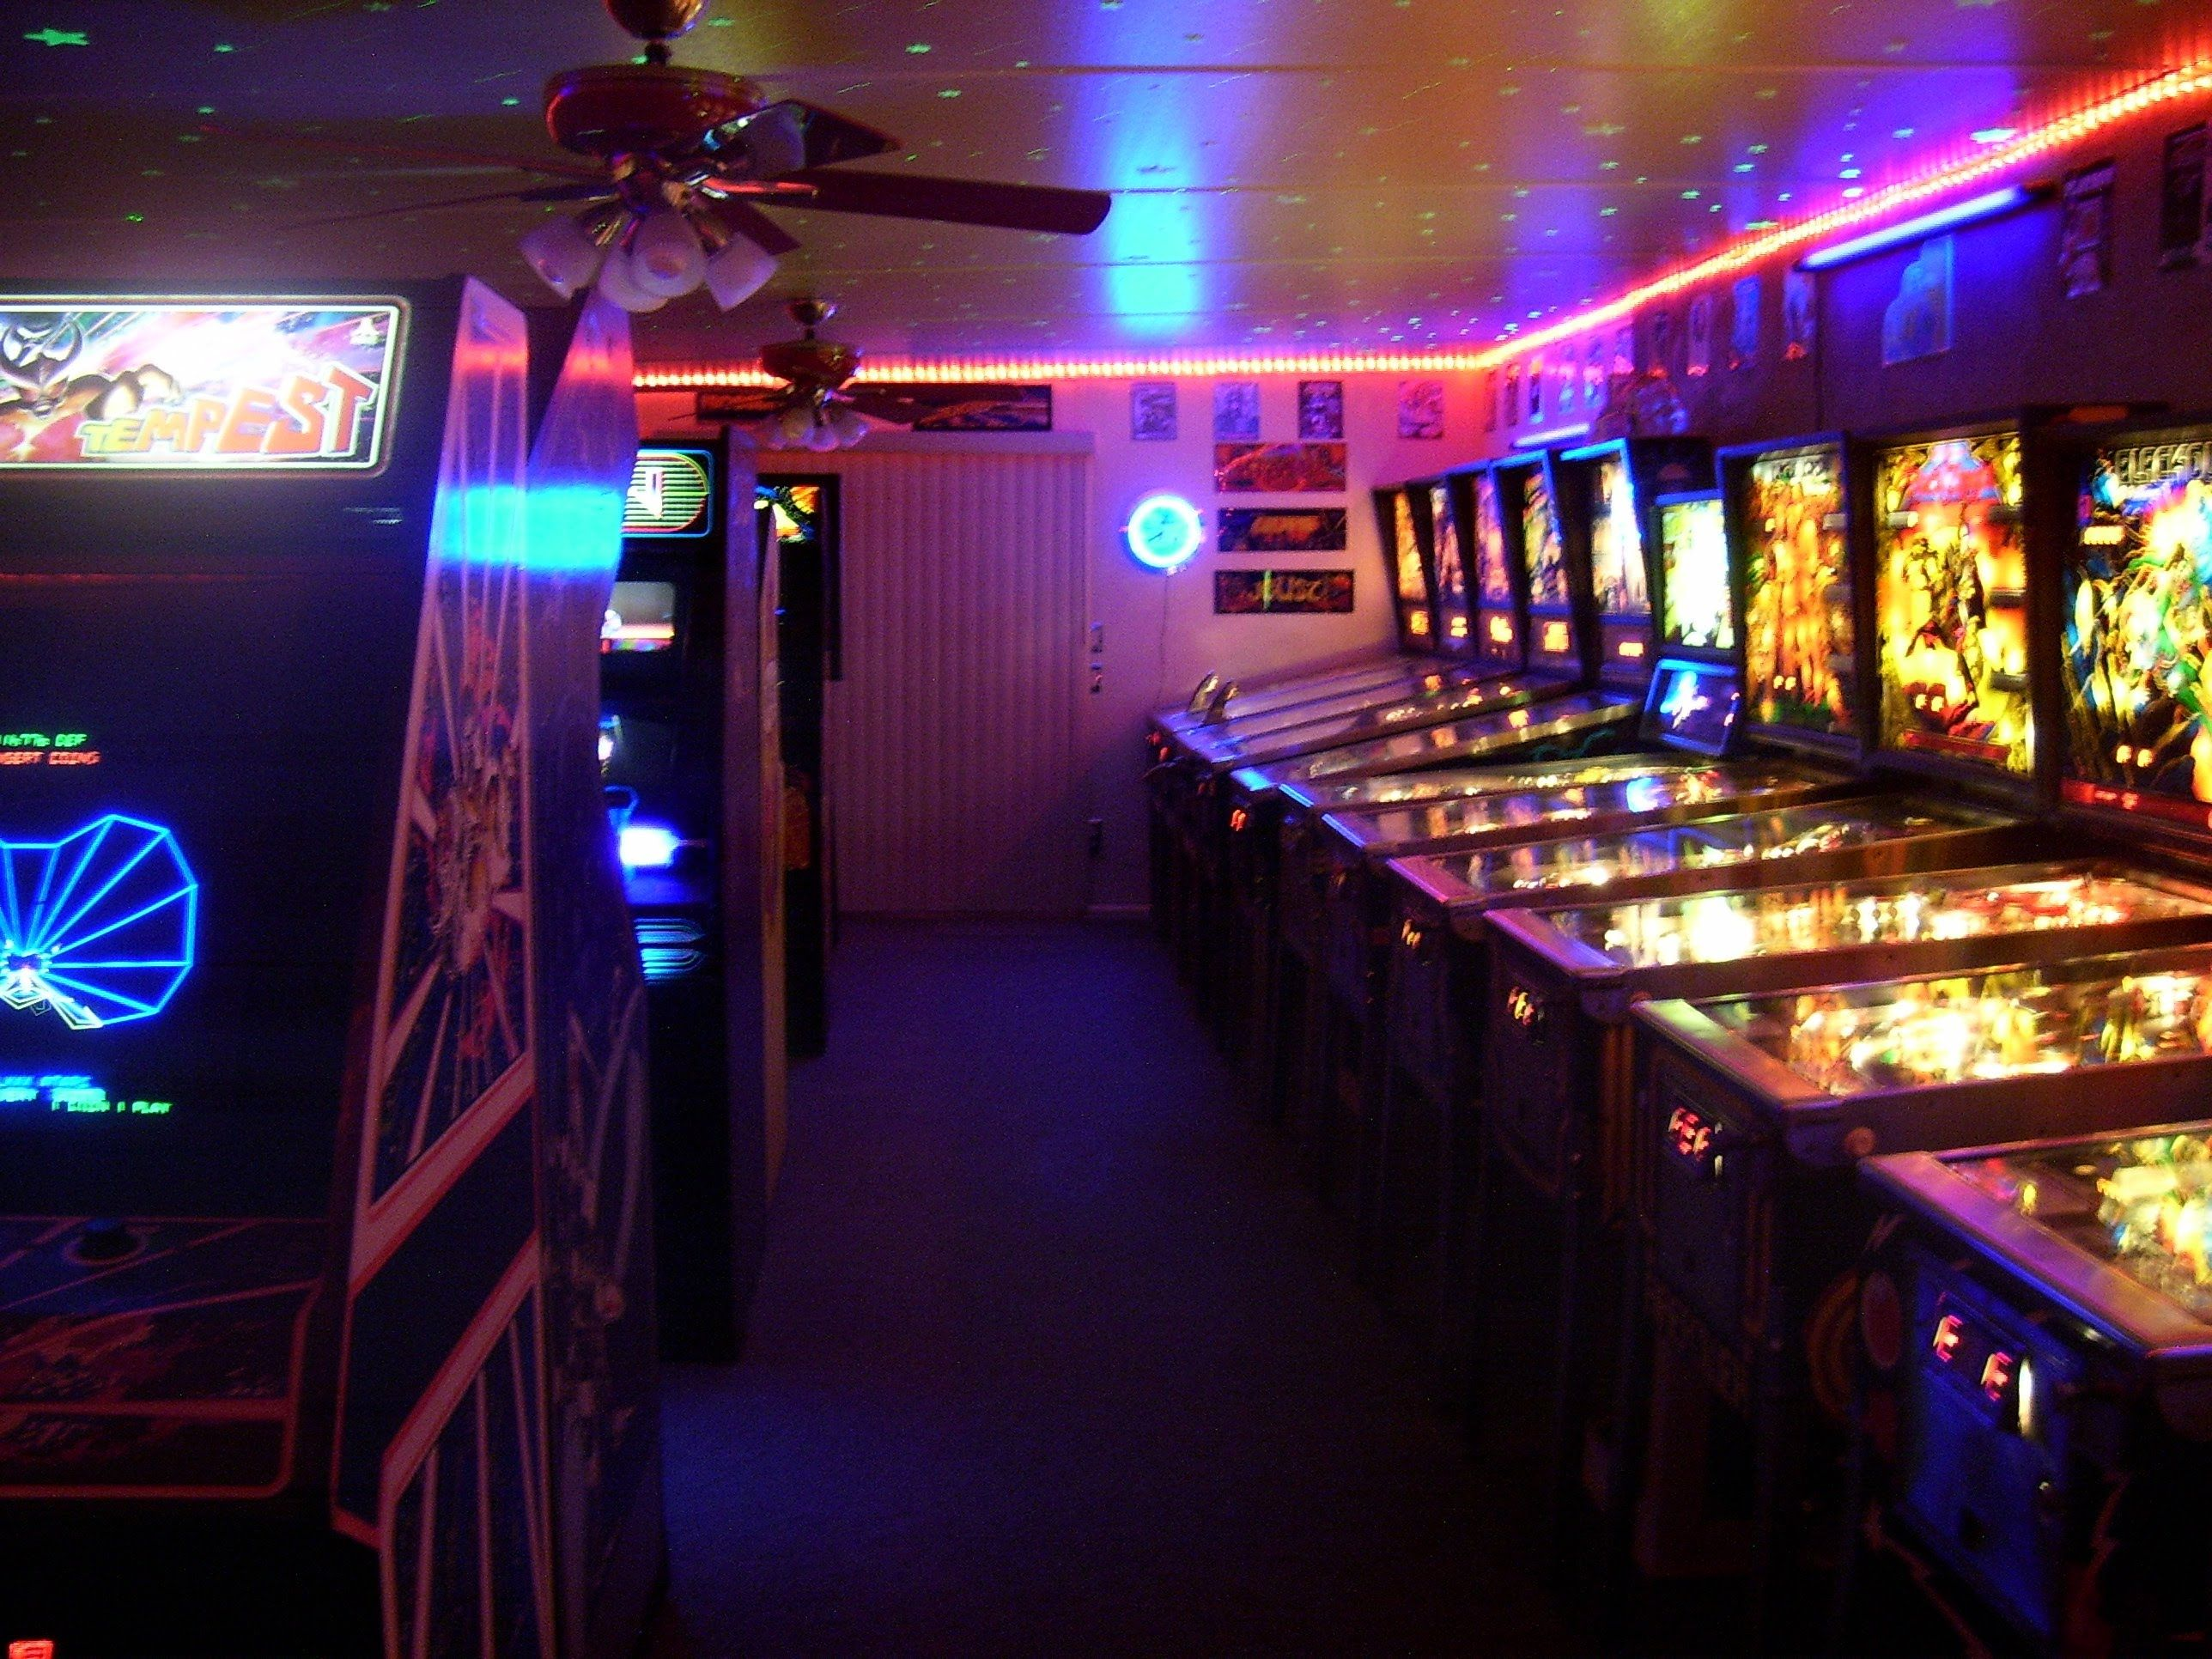 A RECREATION OF THE 80S ARCADE GAME ROOM INCLUDES PINBALL VIDEO GAMES LASER DISK SHUFFLE BOWLER AND MORE 15 YEARS TO COMPL